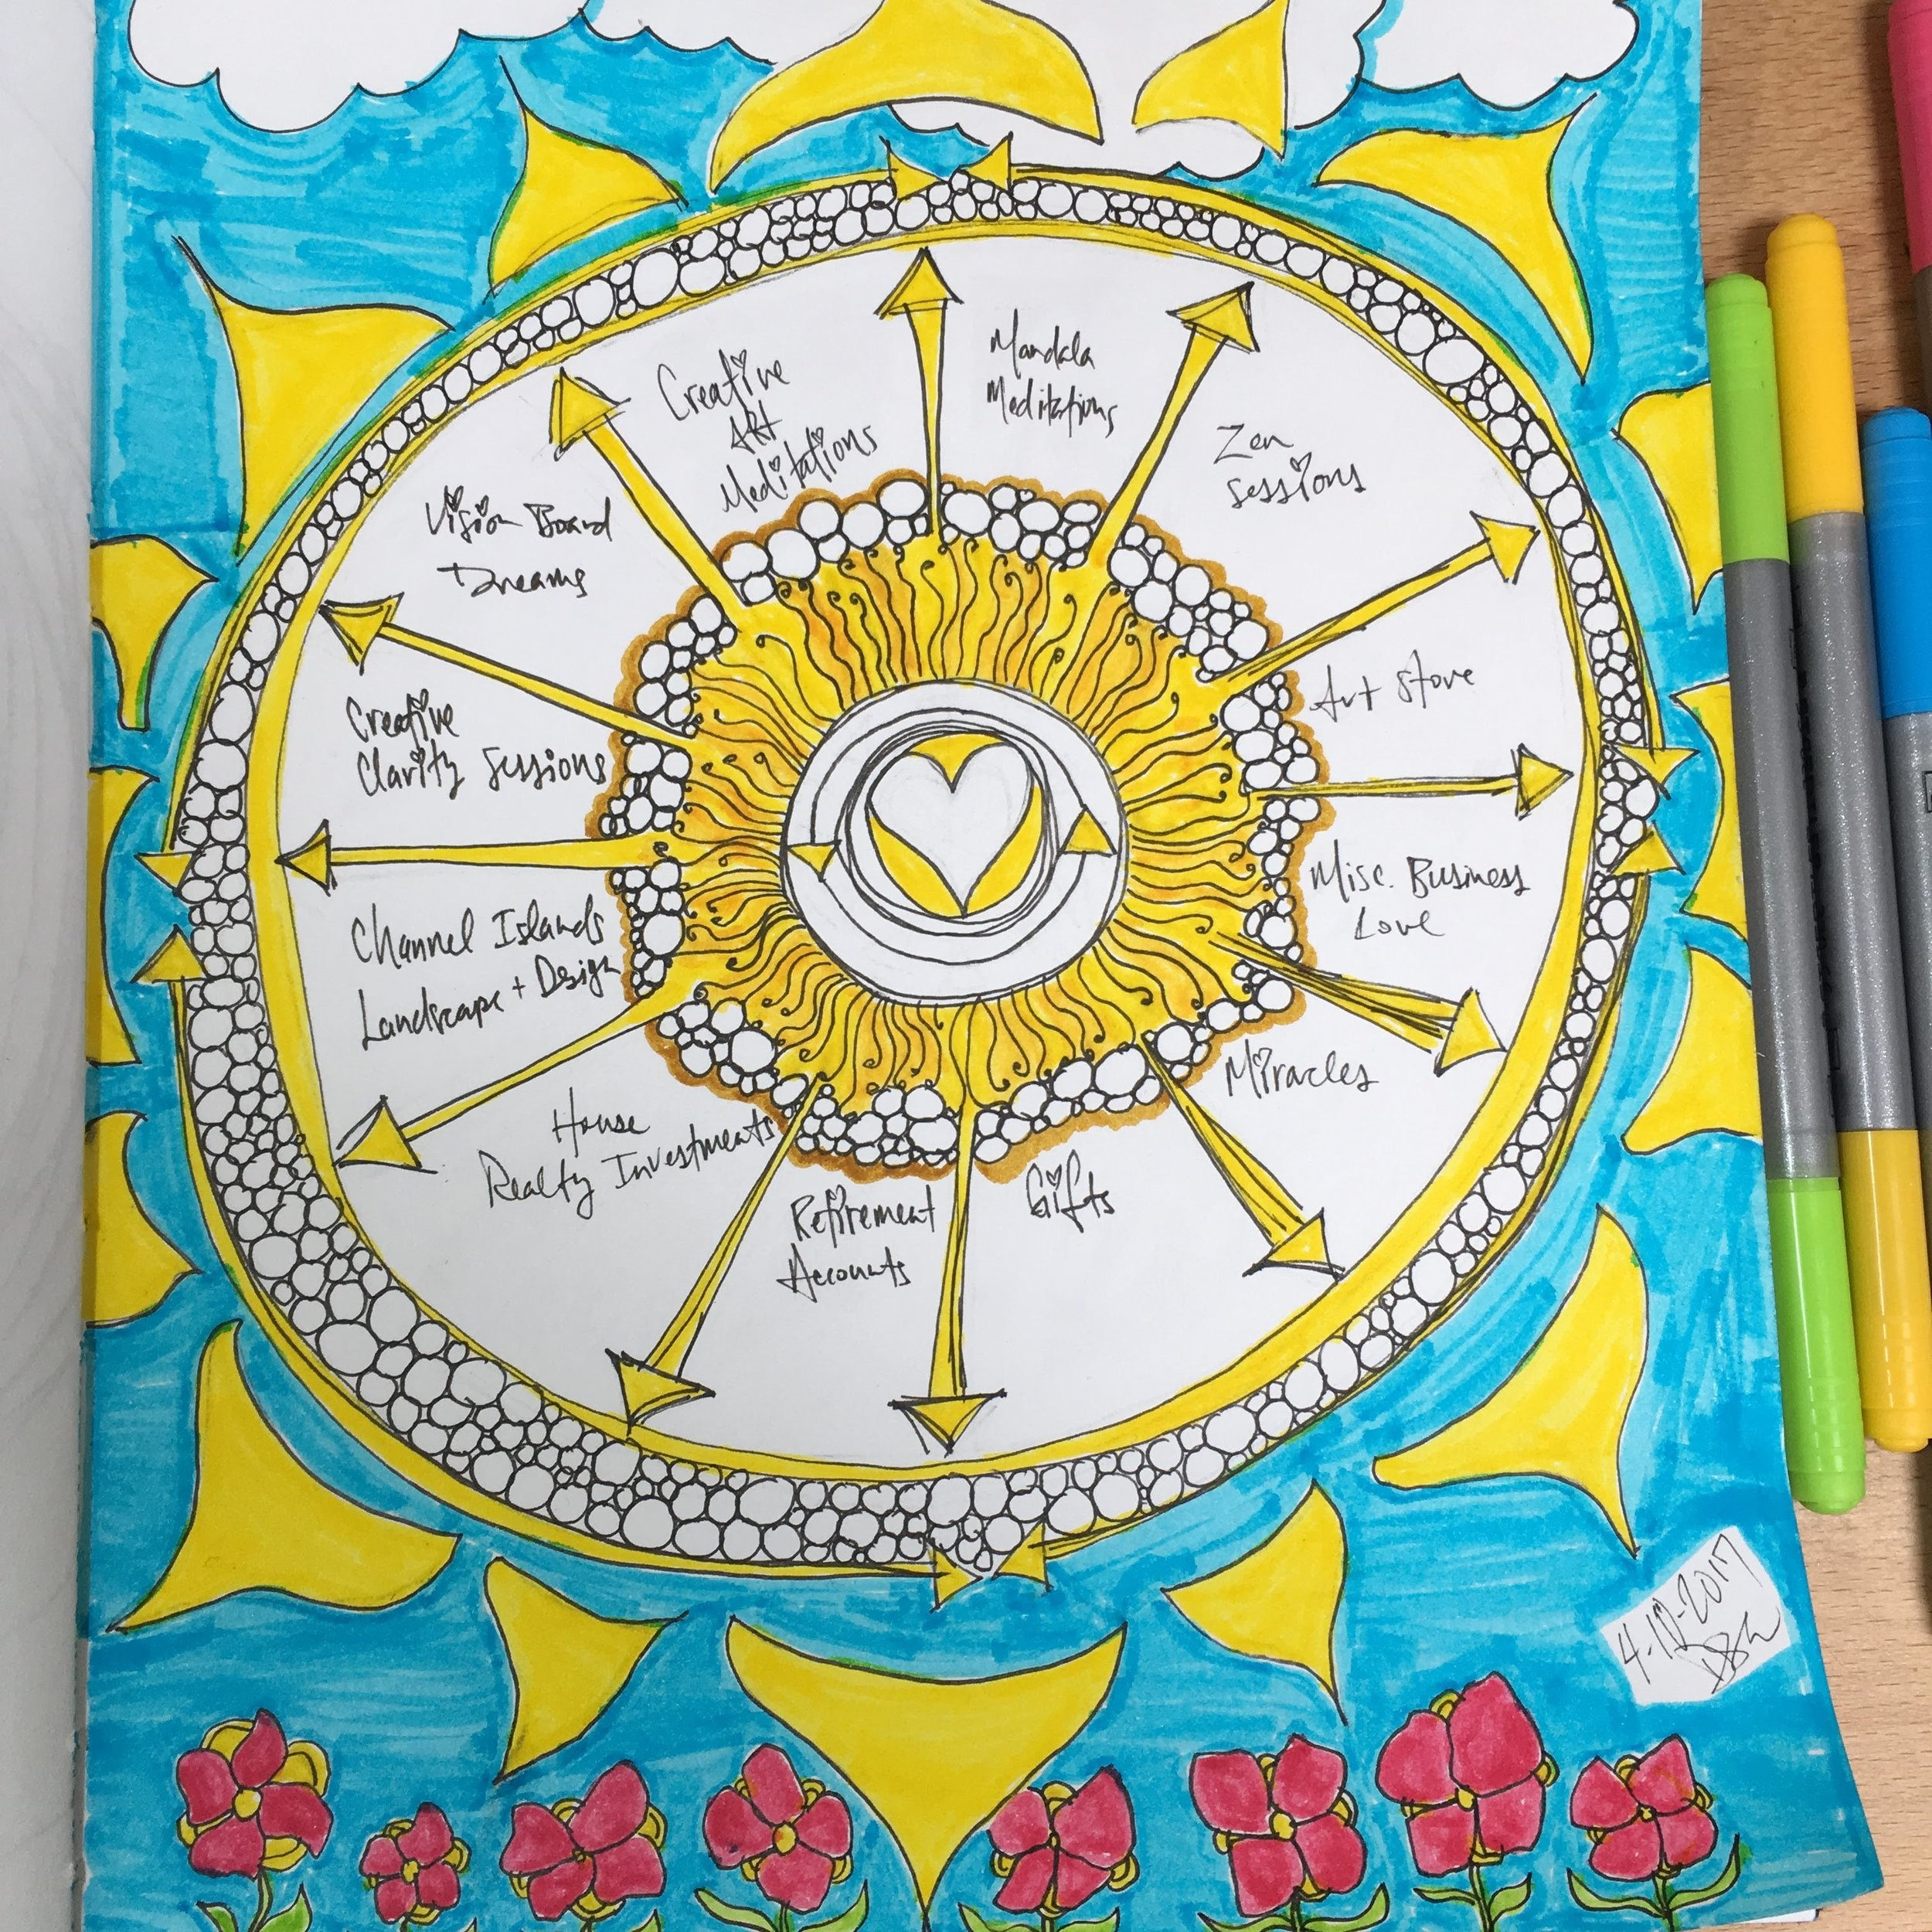 desiree east creativity coaching money wheel.JPG